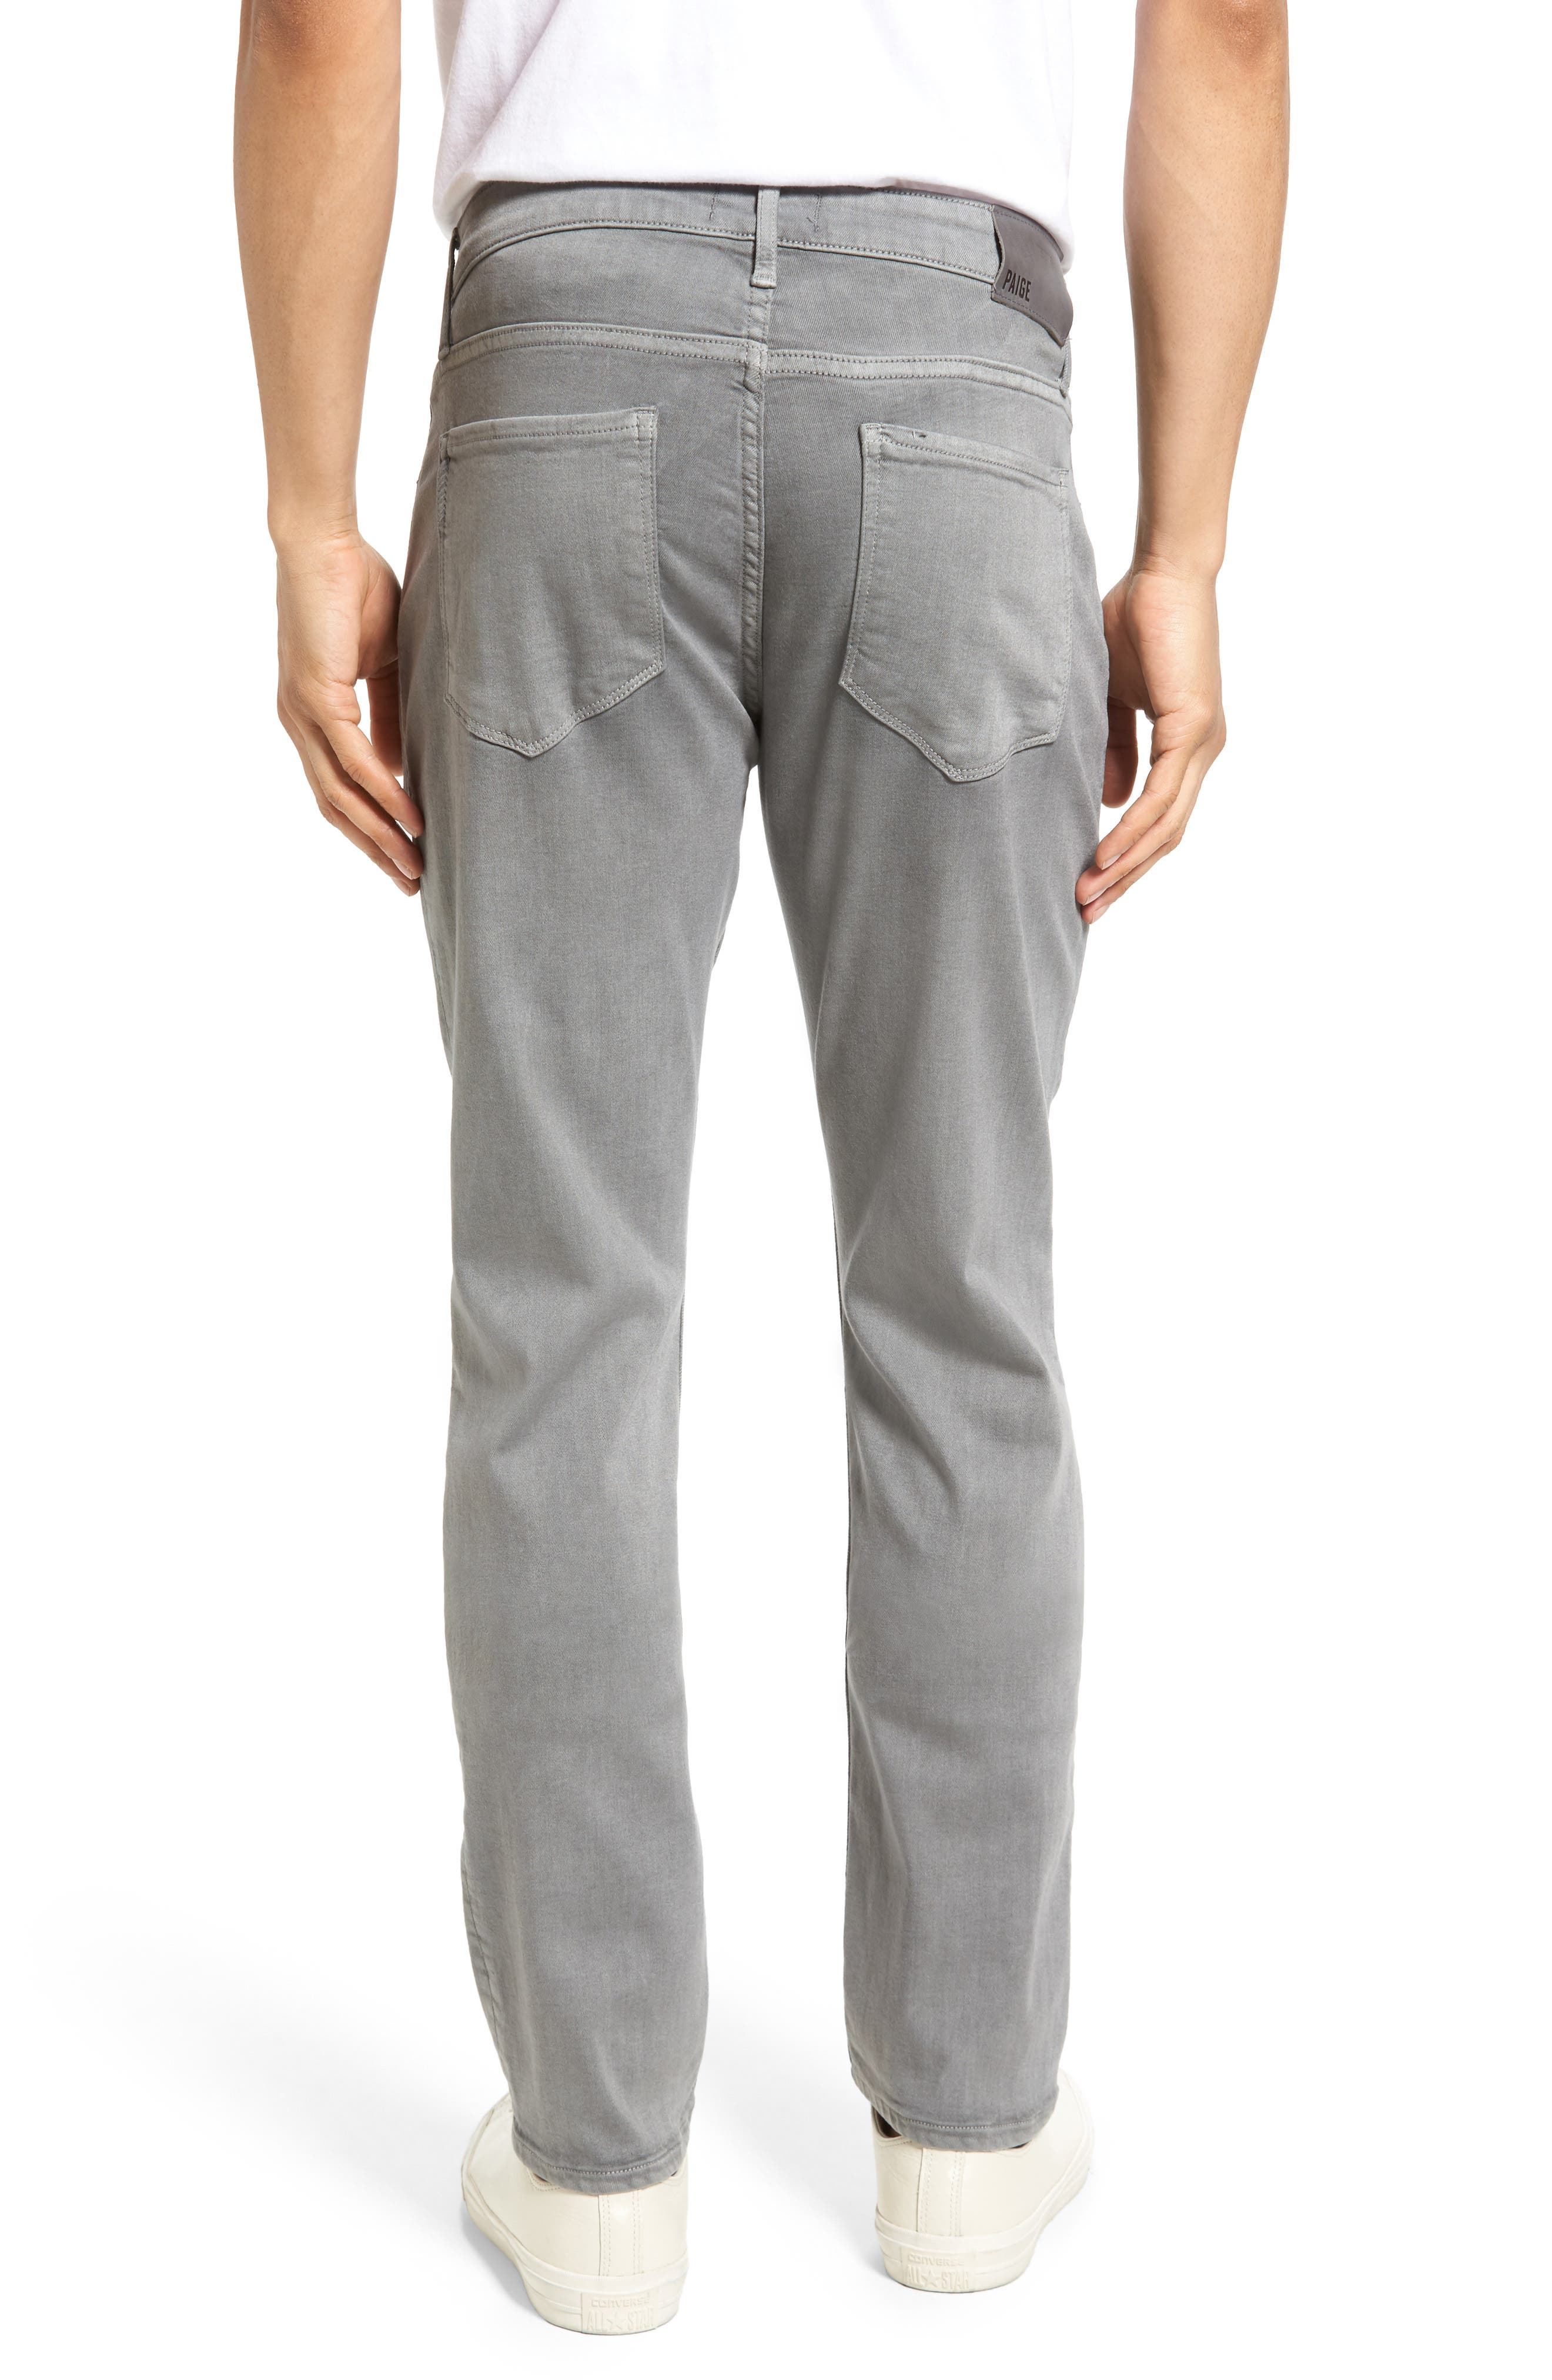 Transcend - Lennox Slim Fit Jeans,                             Alternate thumbnail 2, color,                             020